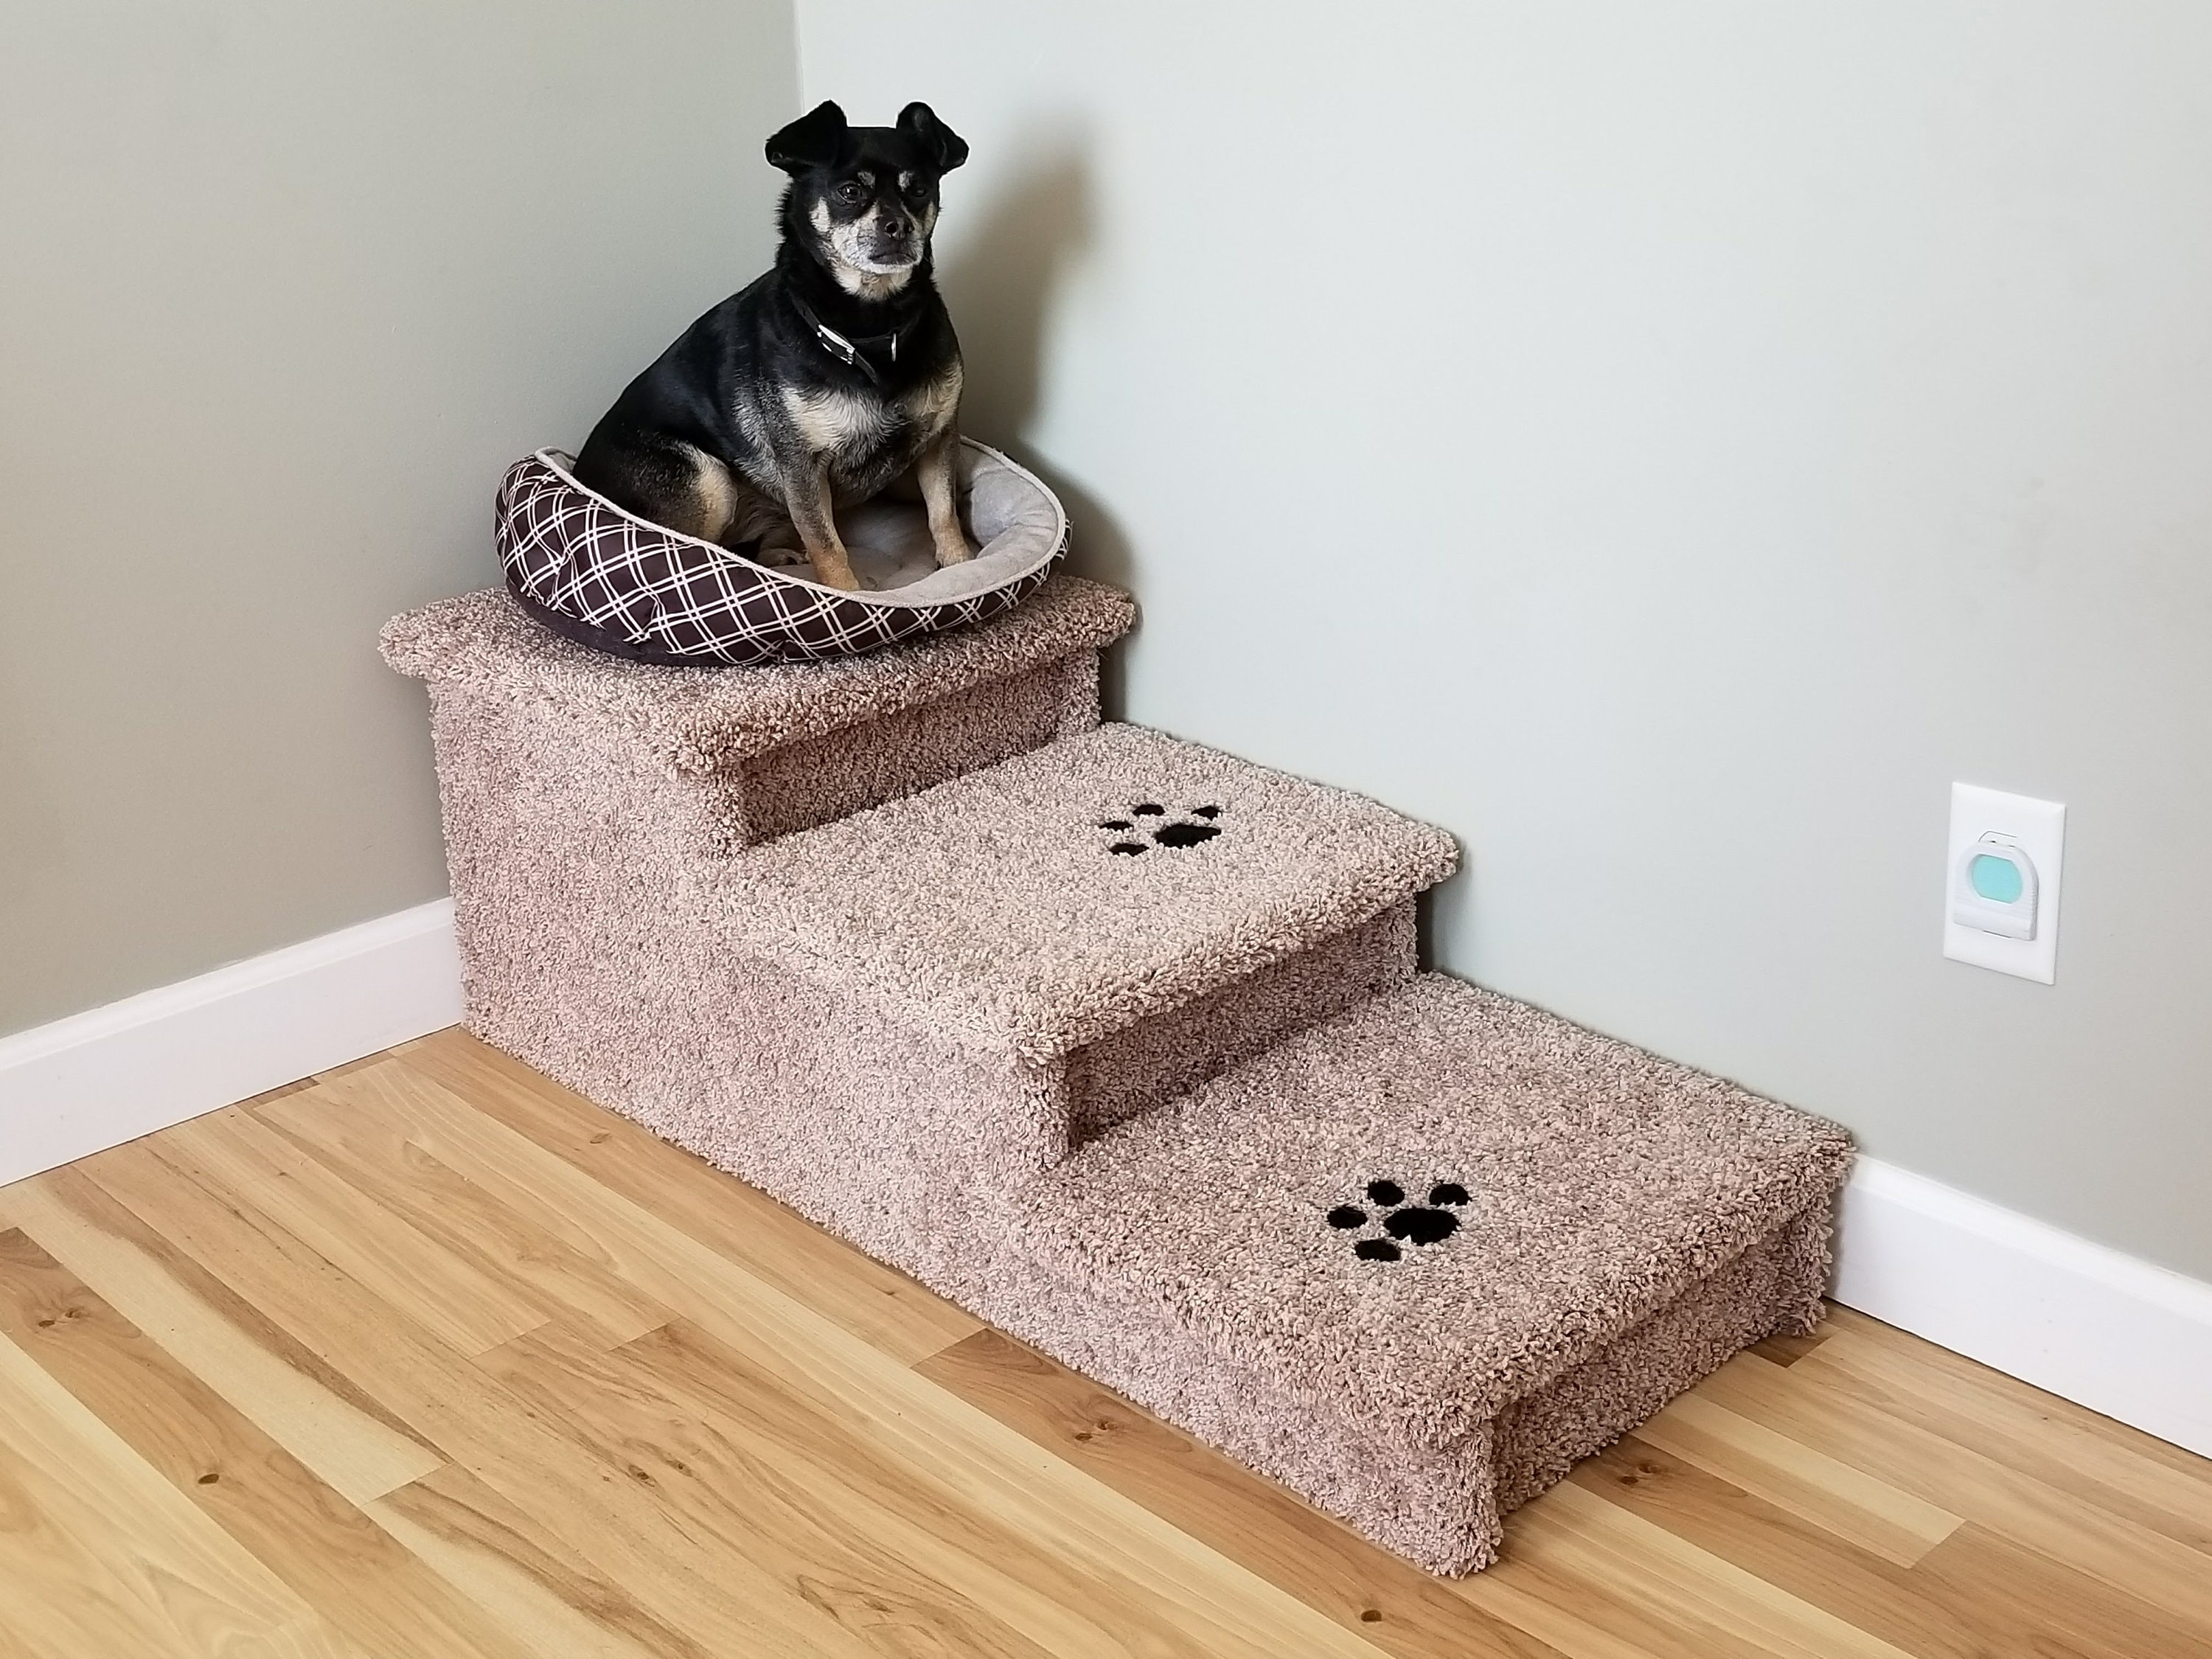 Wobble Free Dog Stair For Big Dogs 5 80 Lbs Sturdy All